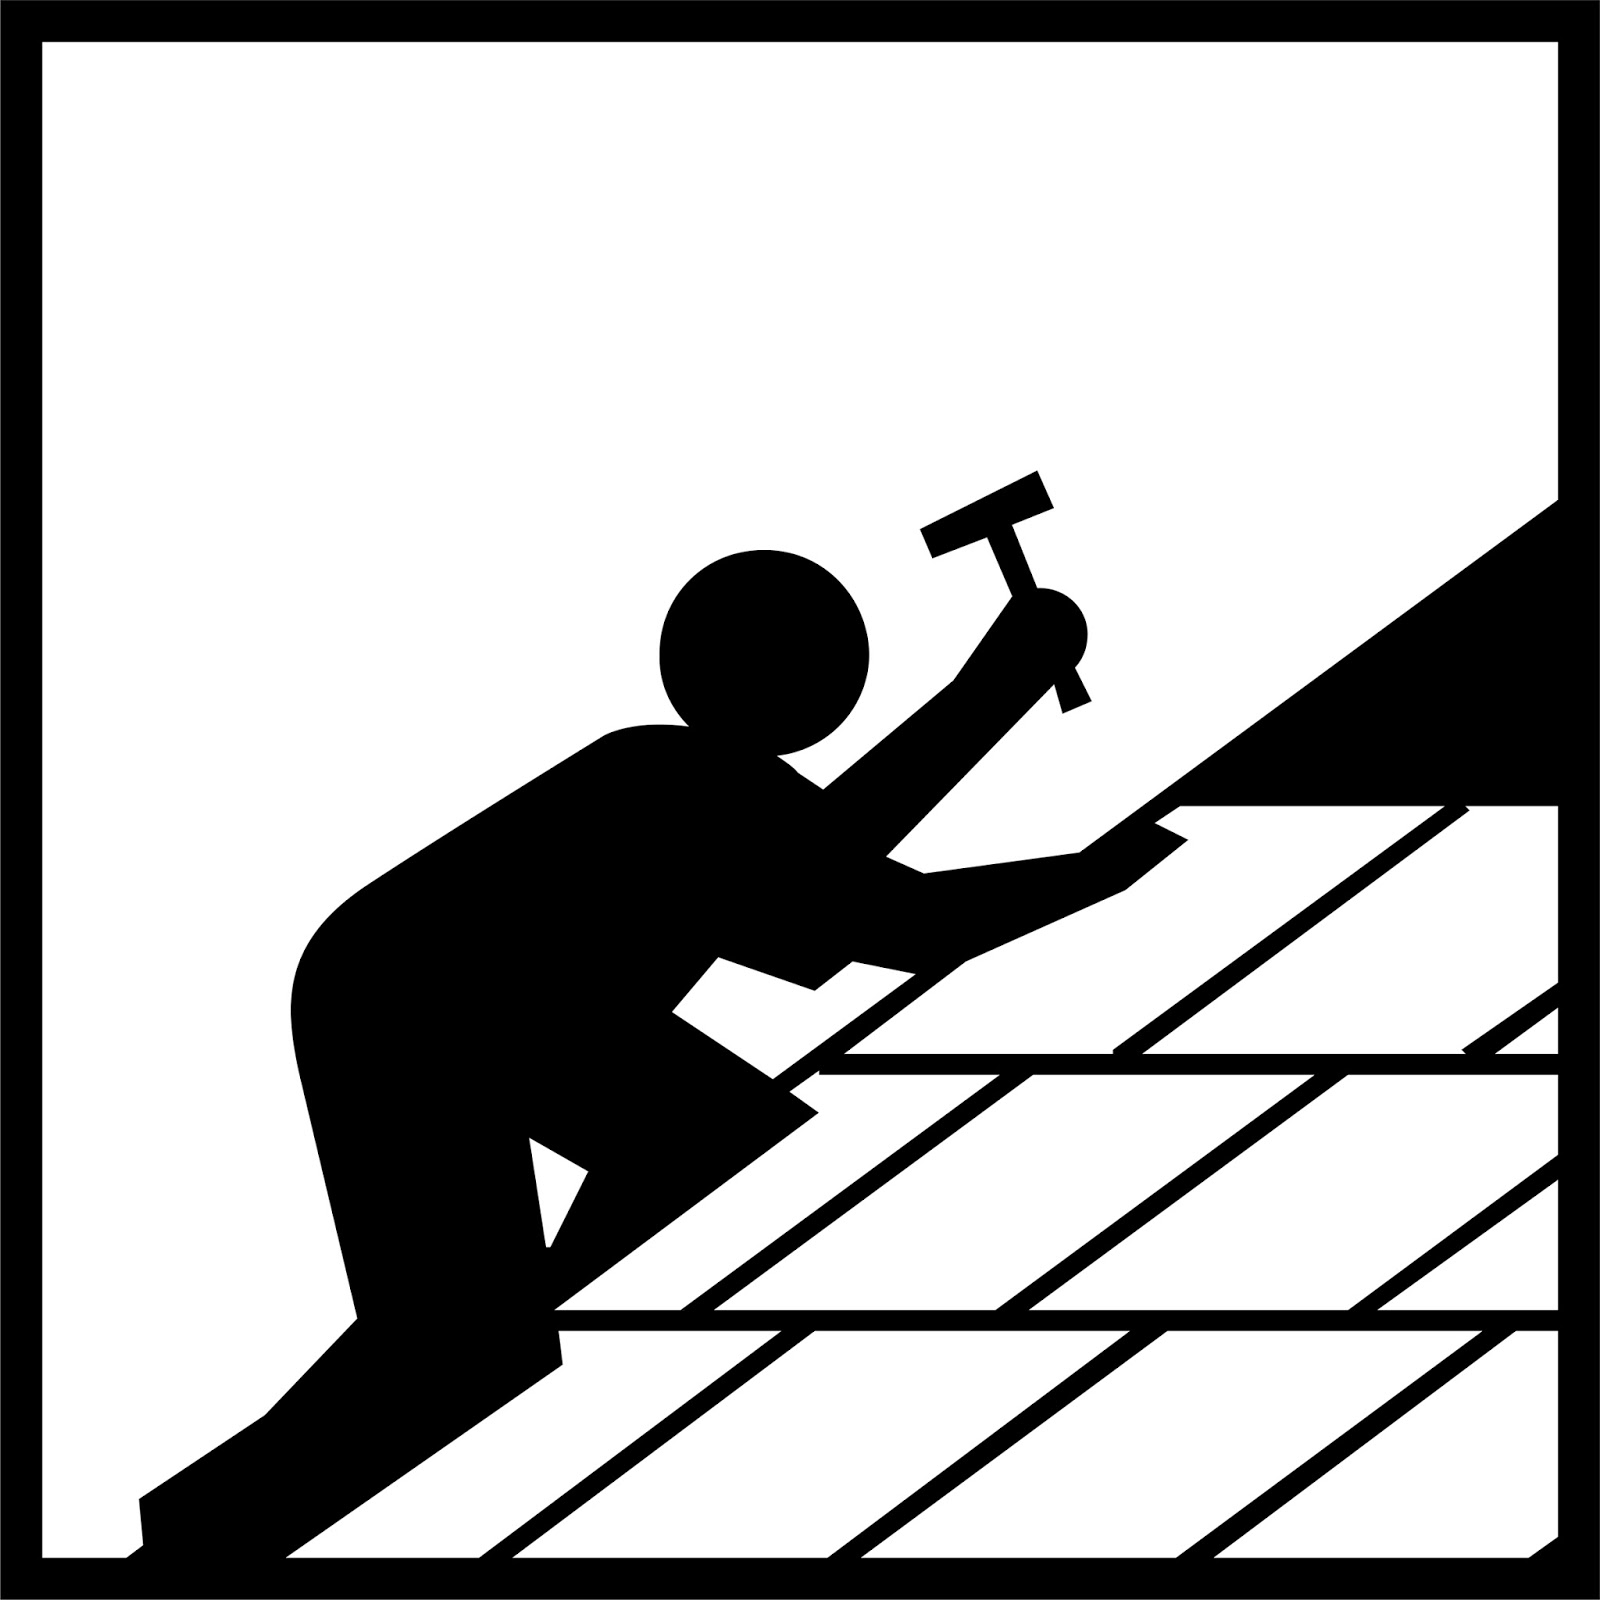 Roofer Clipart.